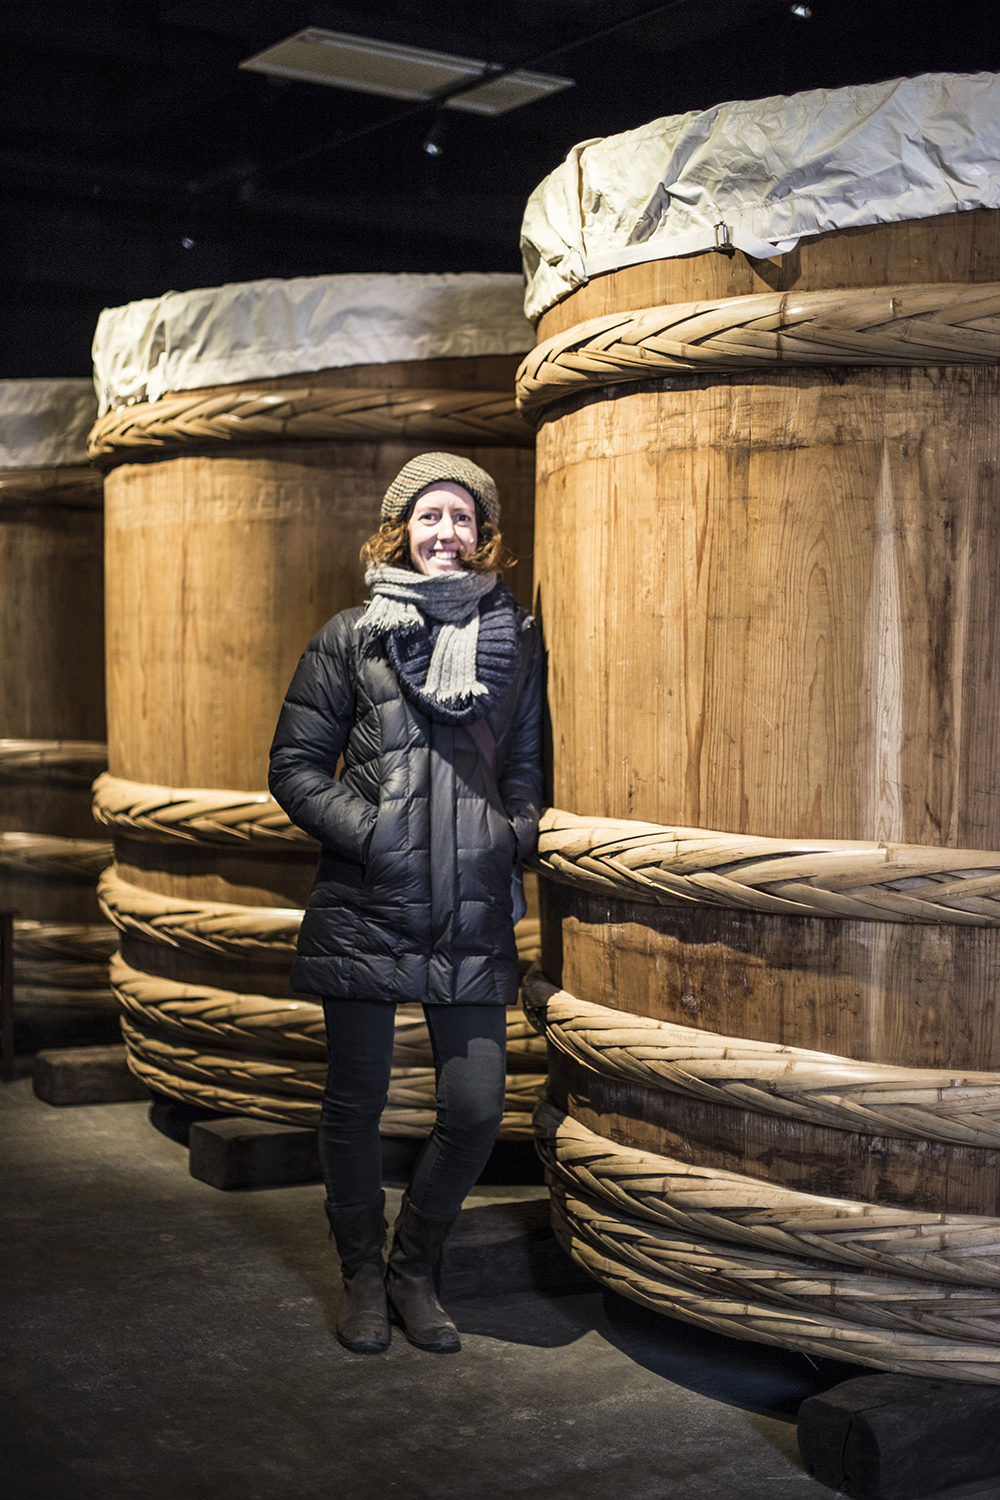 Me with a giant barrel of ageing miso, Takayama, Japan